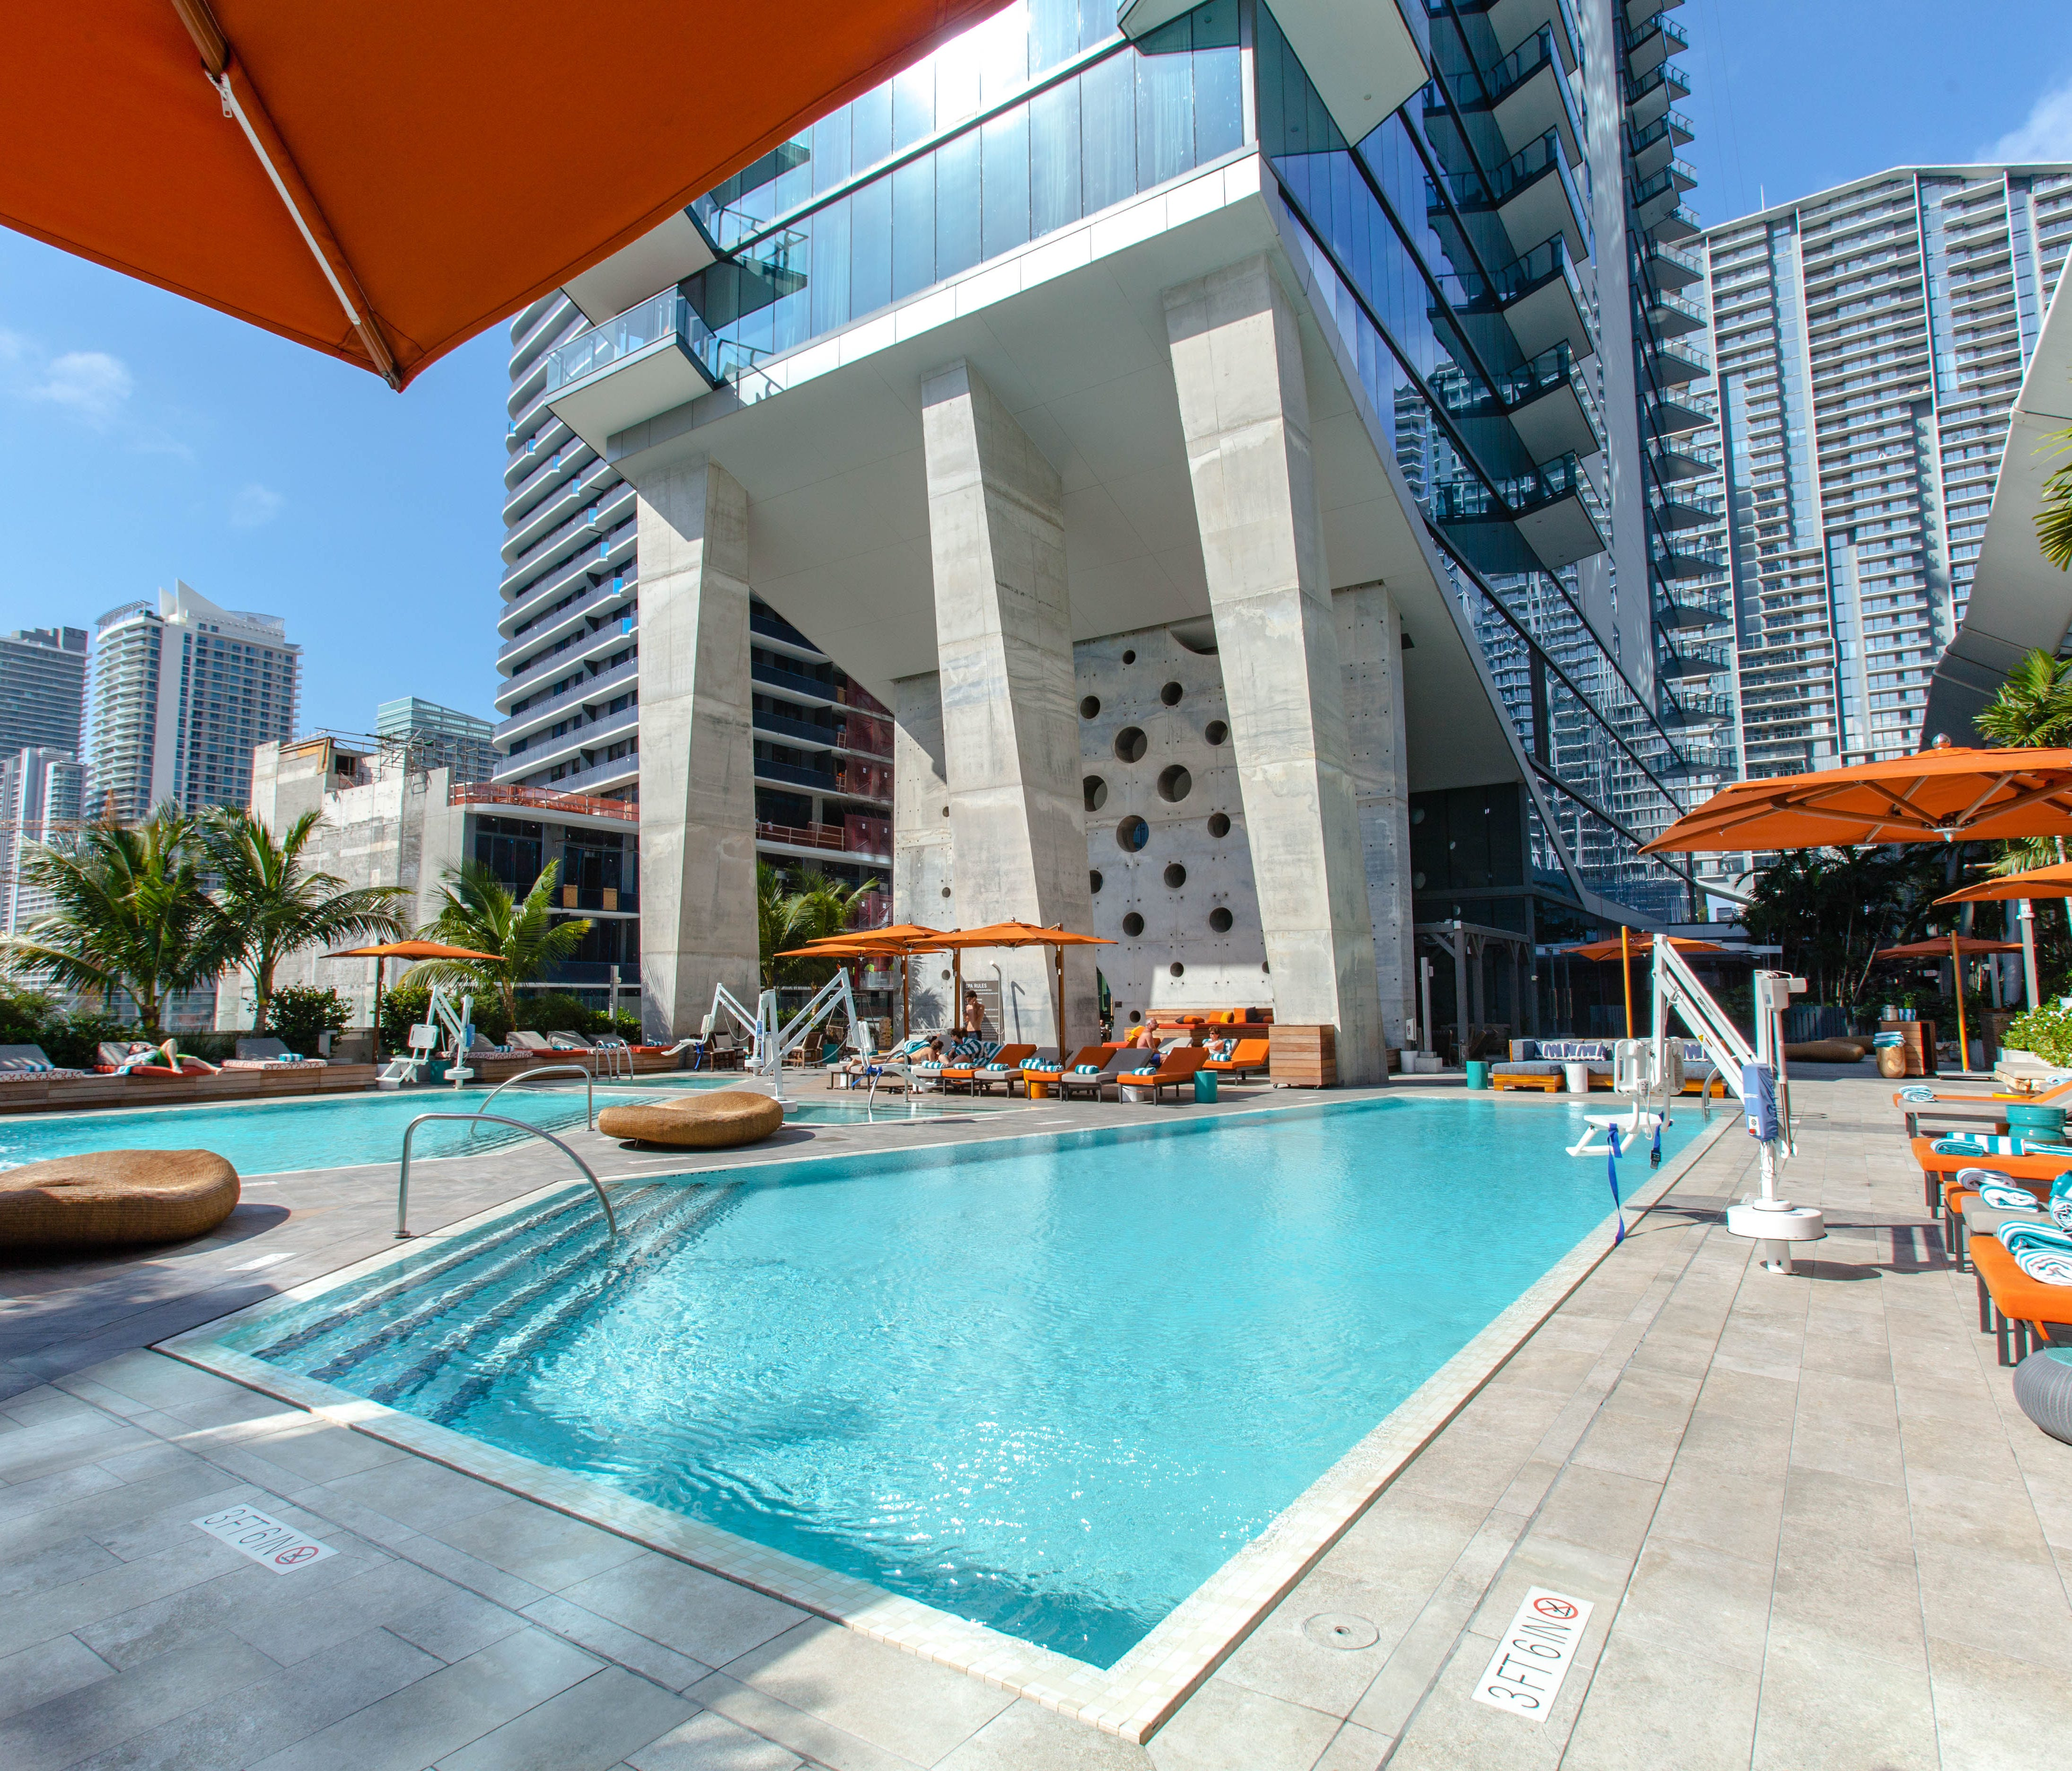 EAST, Miami: Not all of the city's trendiest hotels are on the beach. EAST, Miamisits atop the Brickell City Centre in the Financial District. As such, it often caters to business travelers, though the property is hip enough — with a trendy rooftop